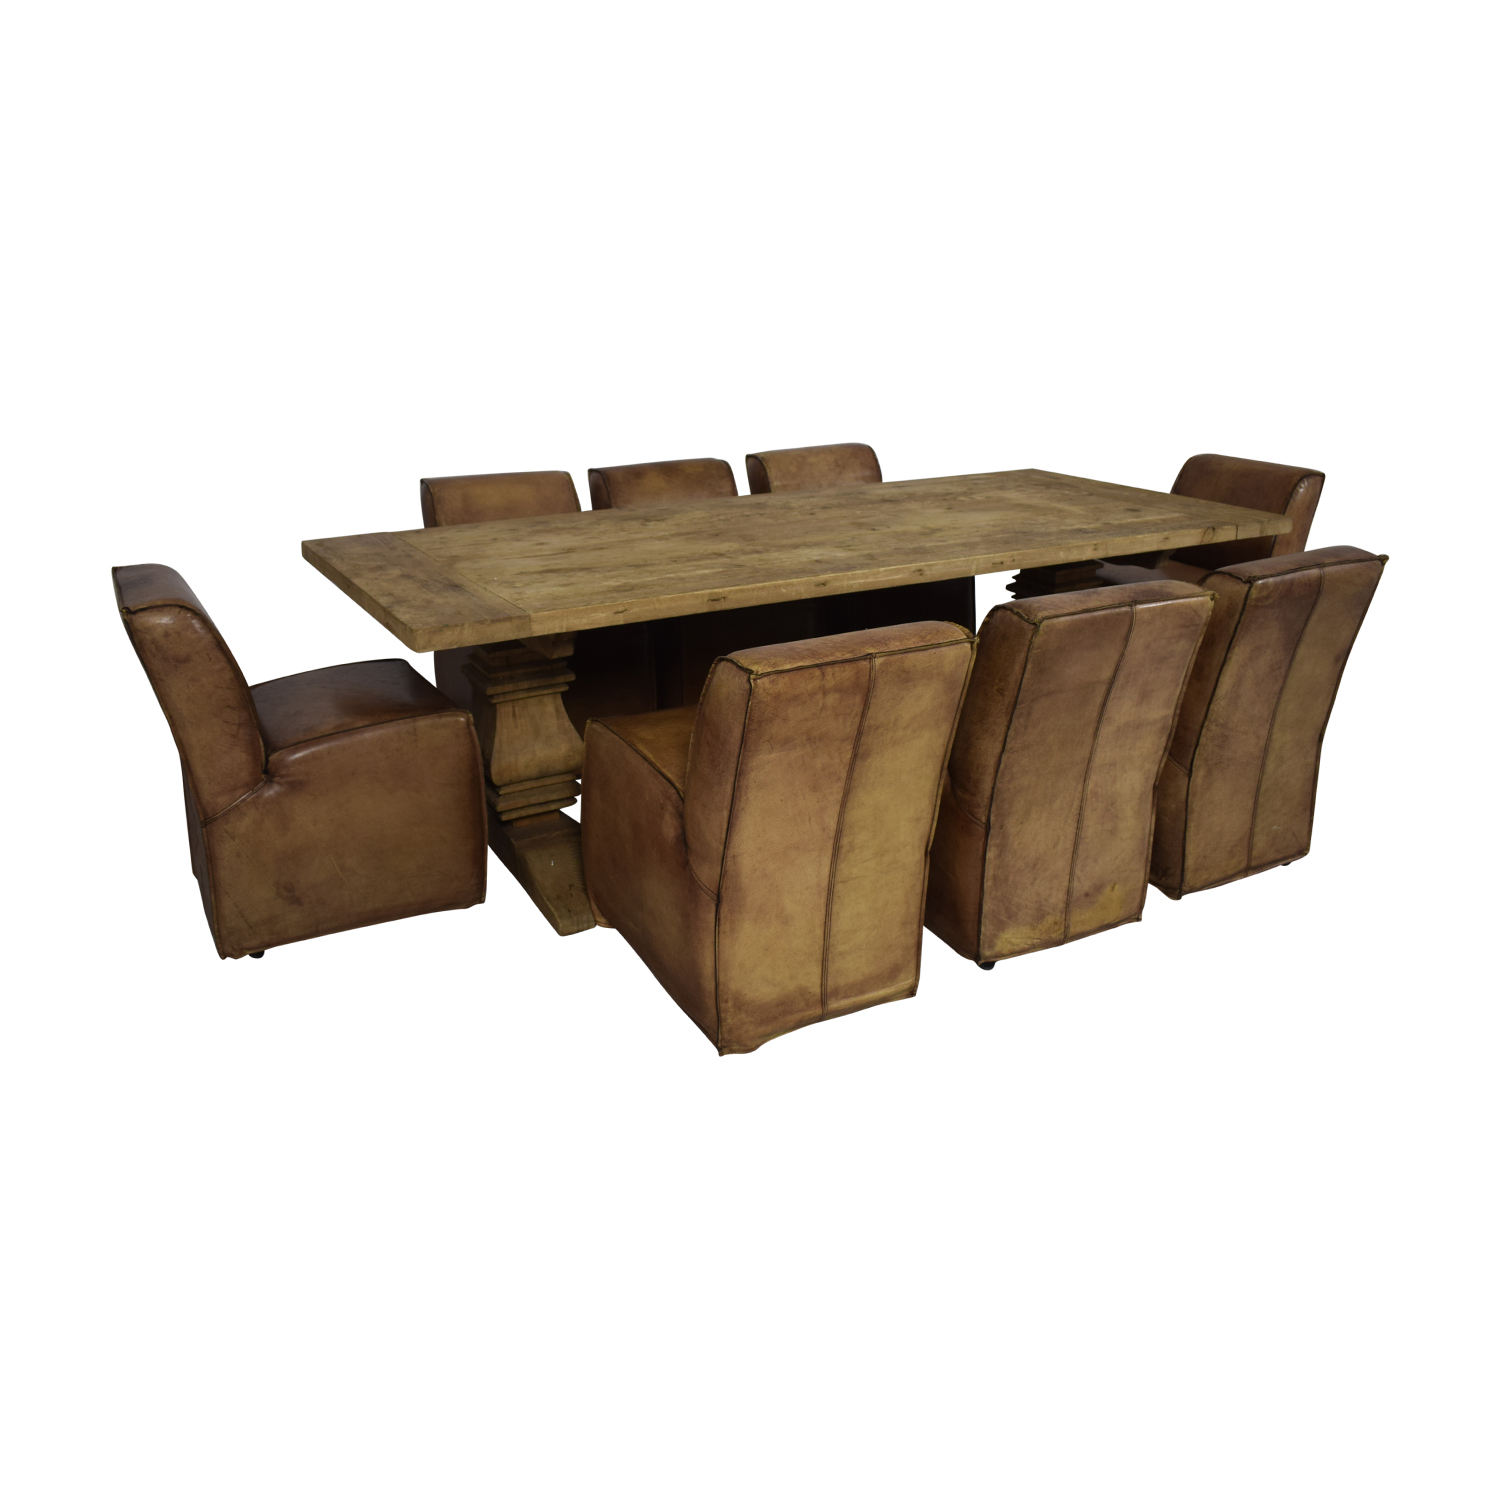 Rustic Extendable Table with Tan Chairs / Tables